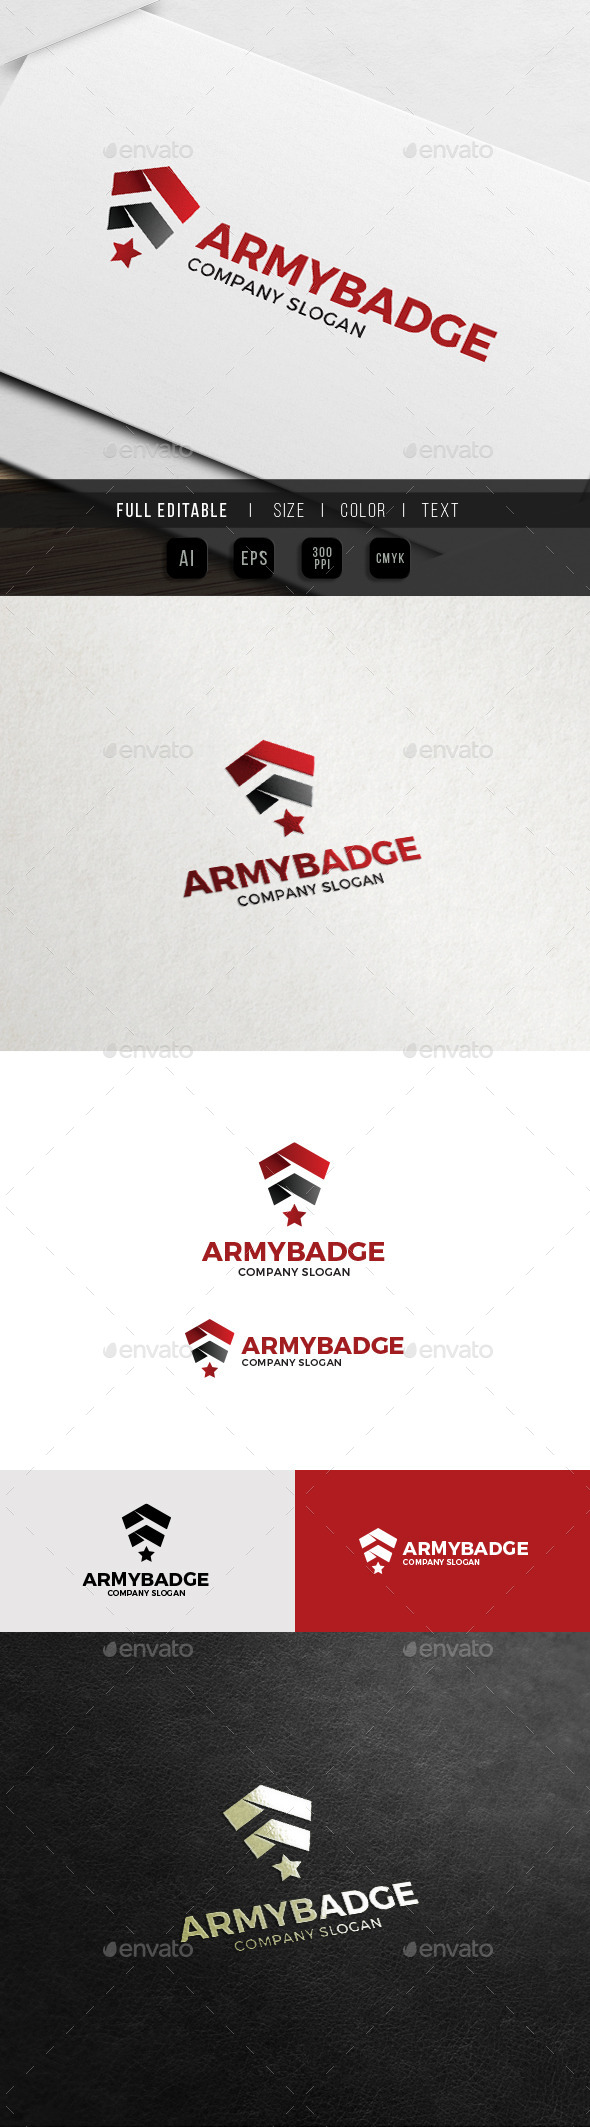 Army Badge - Military Soldier Logo - Symbols Logo Templates